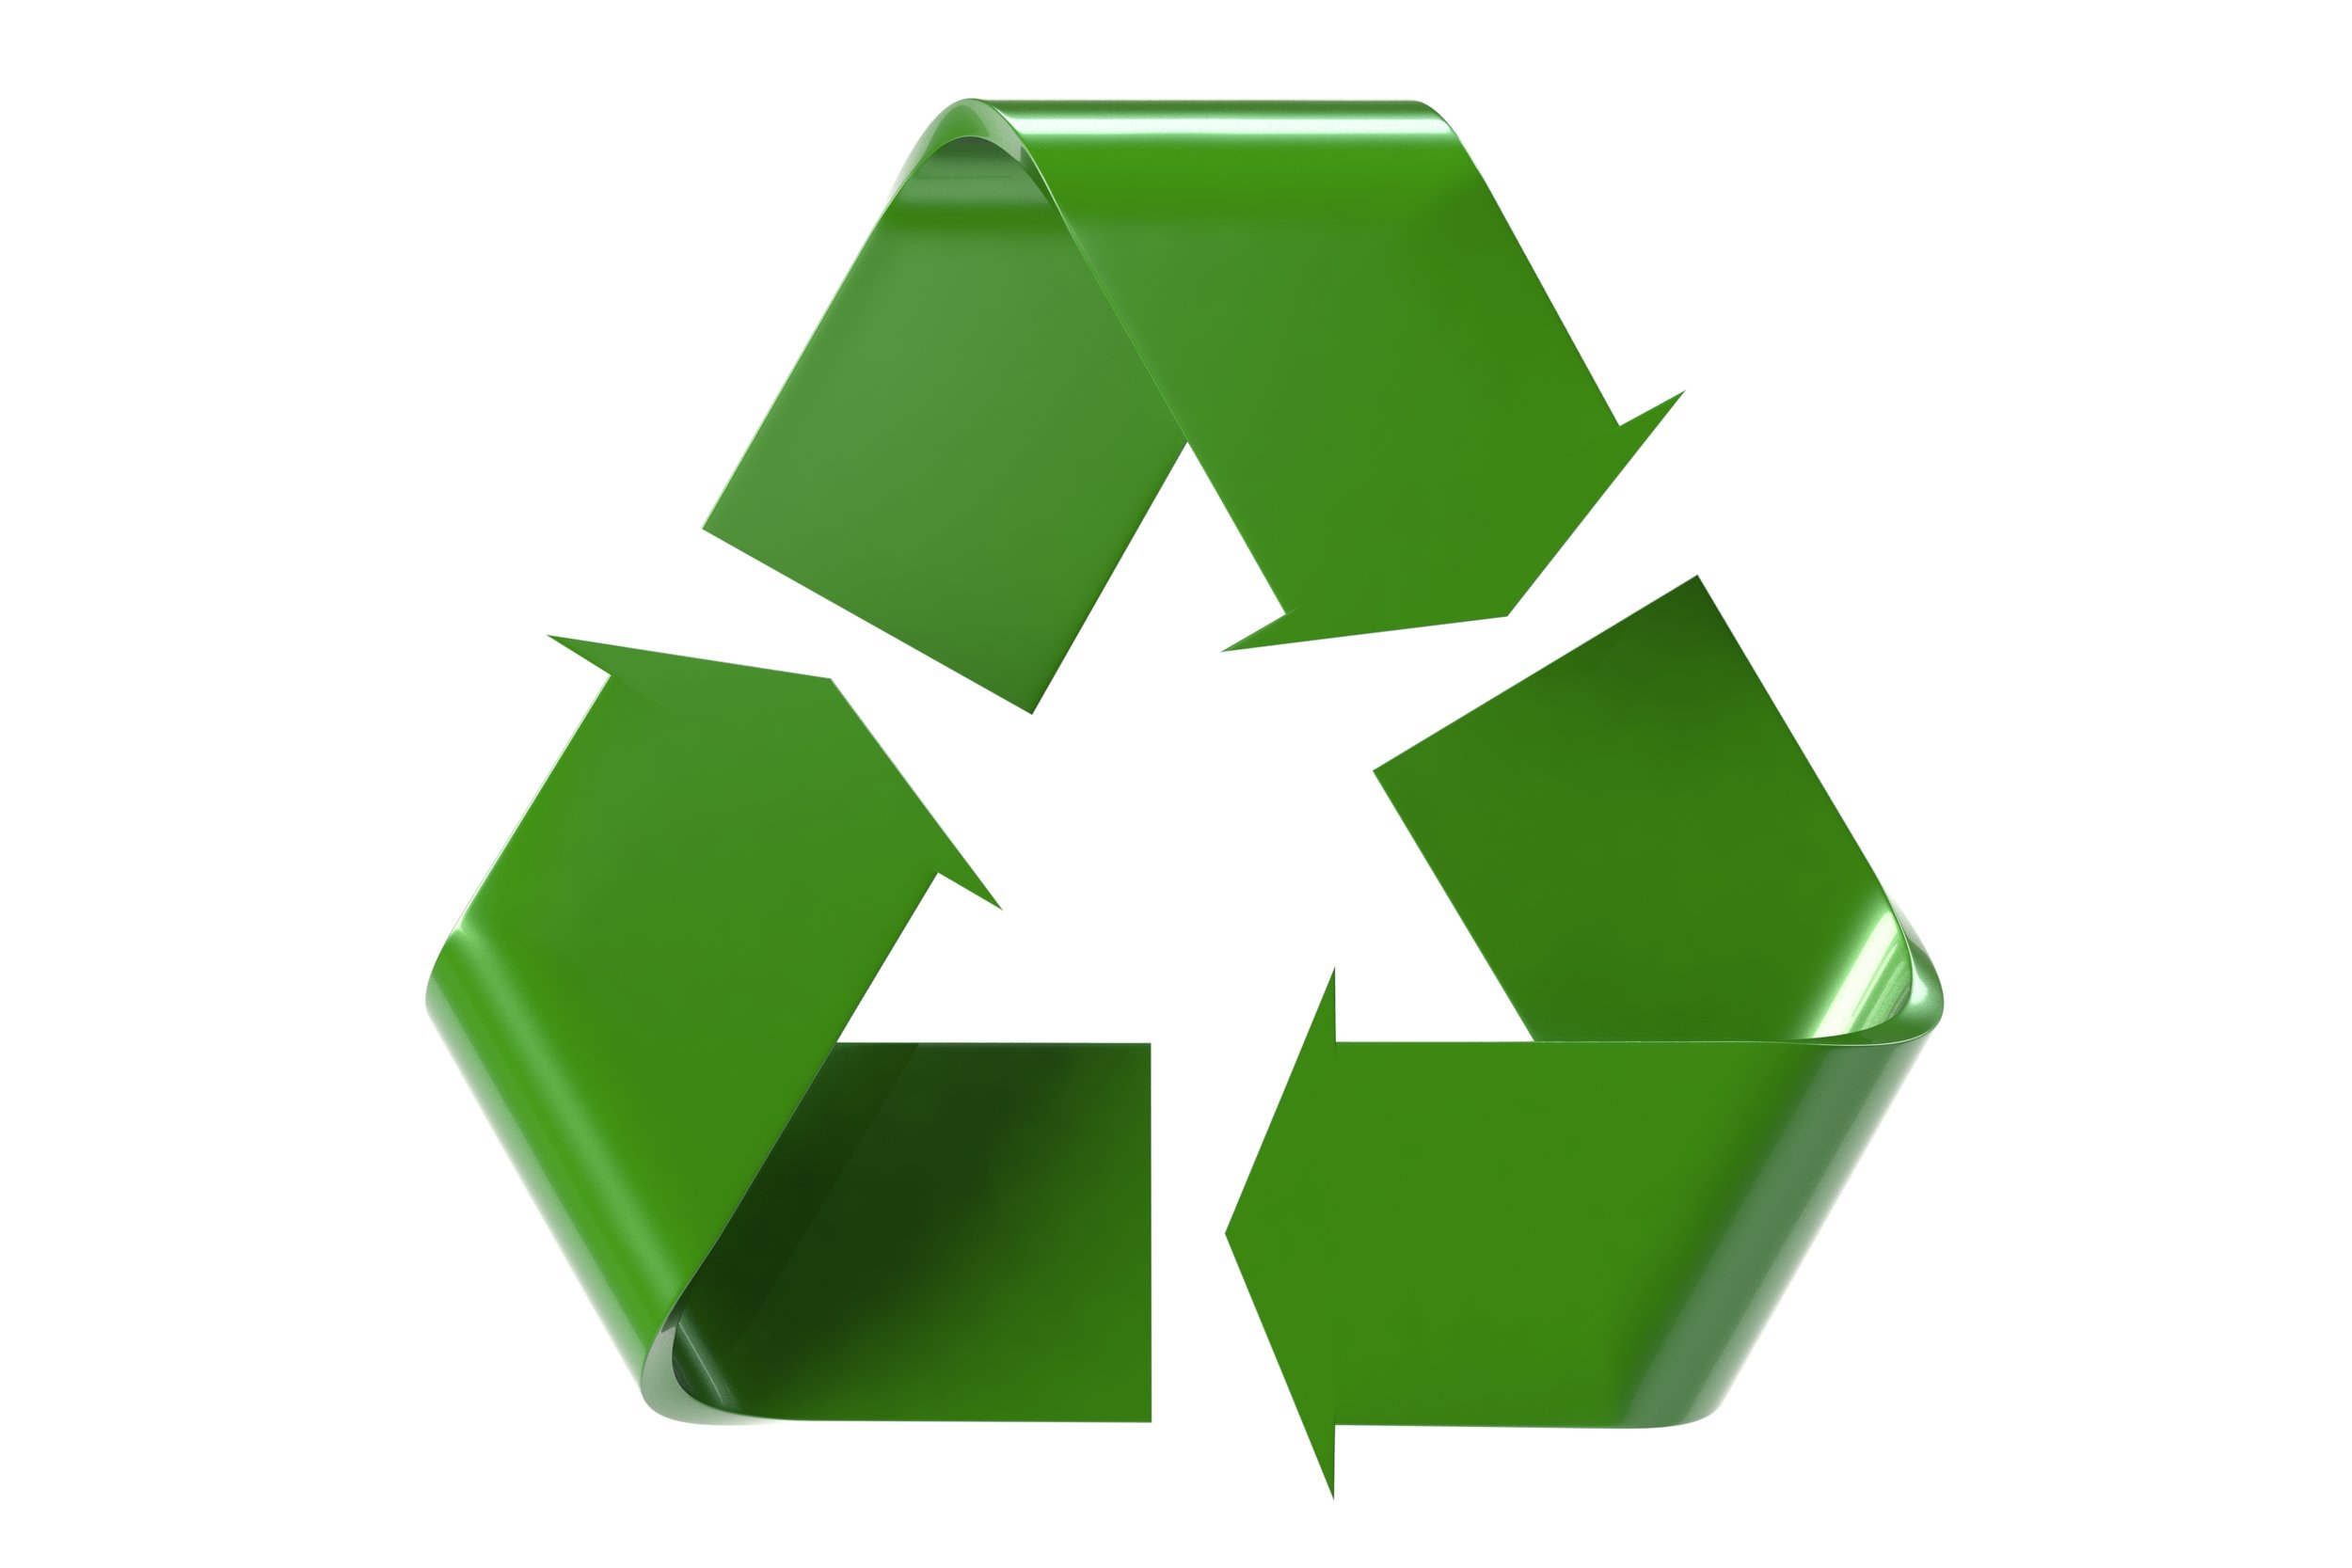 3D Recycle Logo by Chris Potter, ccPixs.com, January 1, 2013